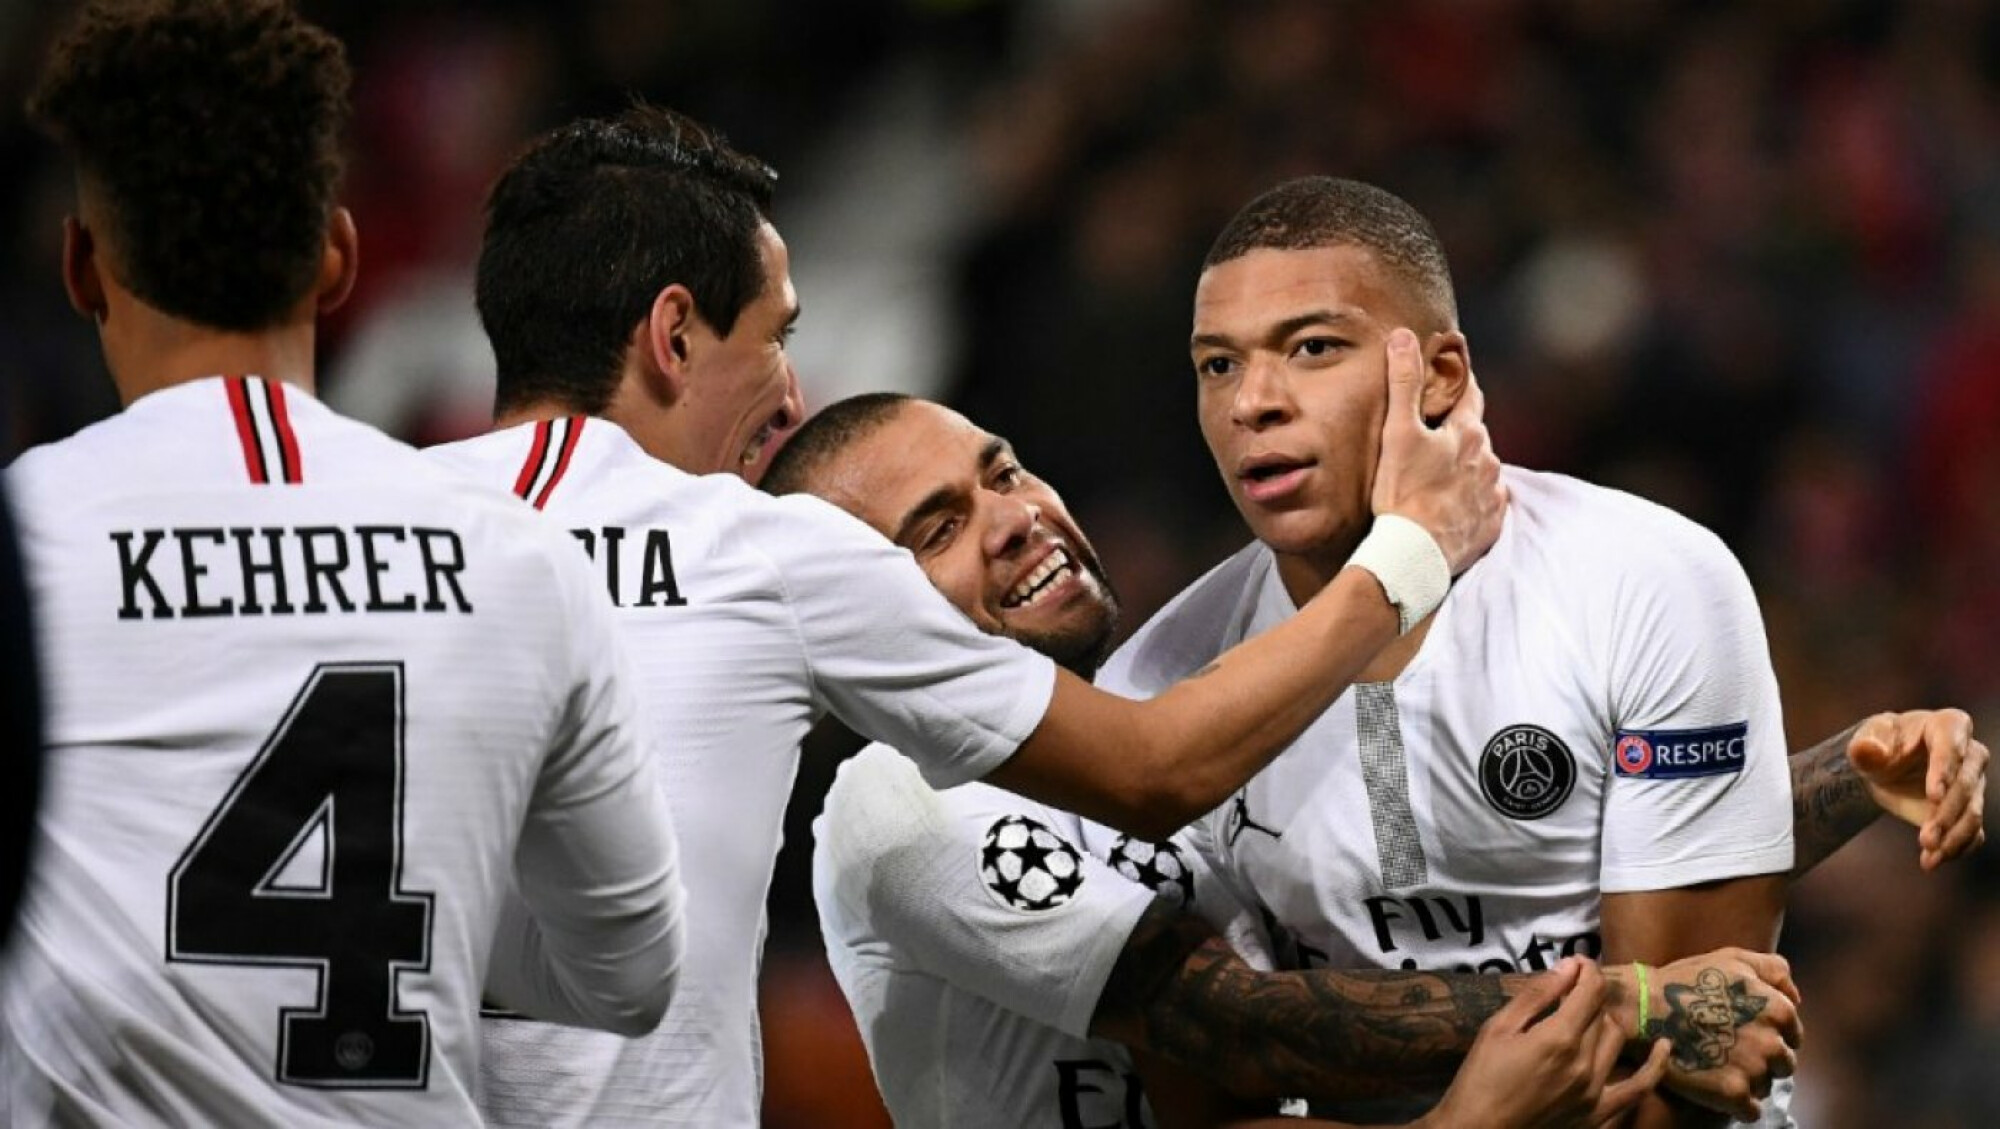 Champions League: Rd of 16 - PSG school Manchester United while AS Roma scrap past FC Porto